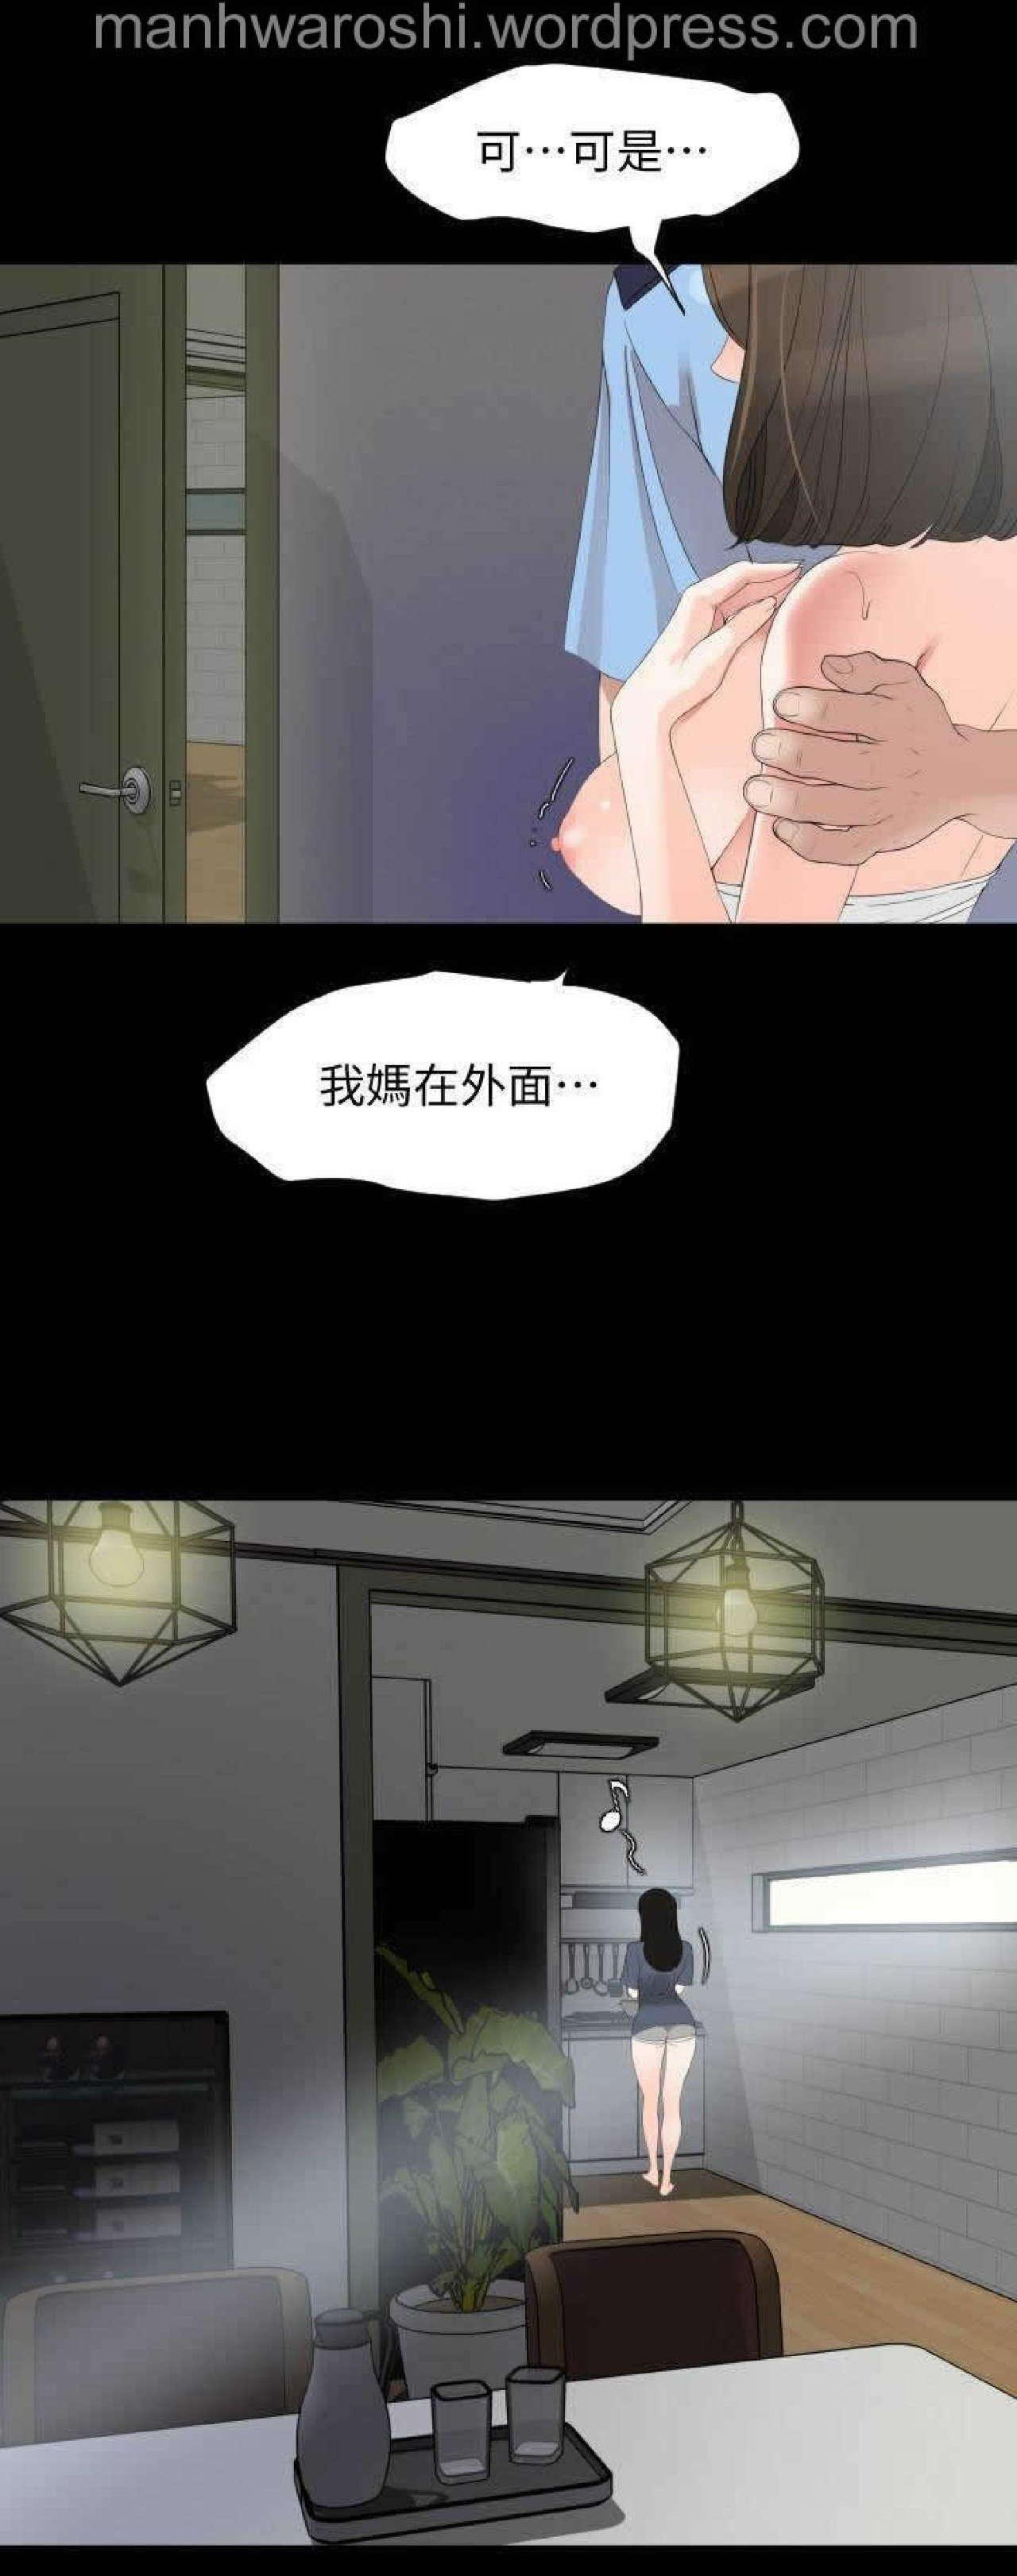 Don't Be Like This! Son-In-Law | 与岳母同屋 第 7 [Chinese] Manhwa 16